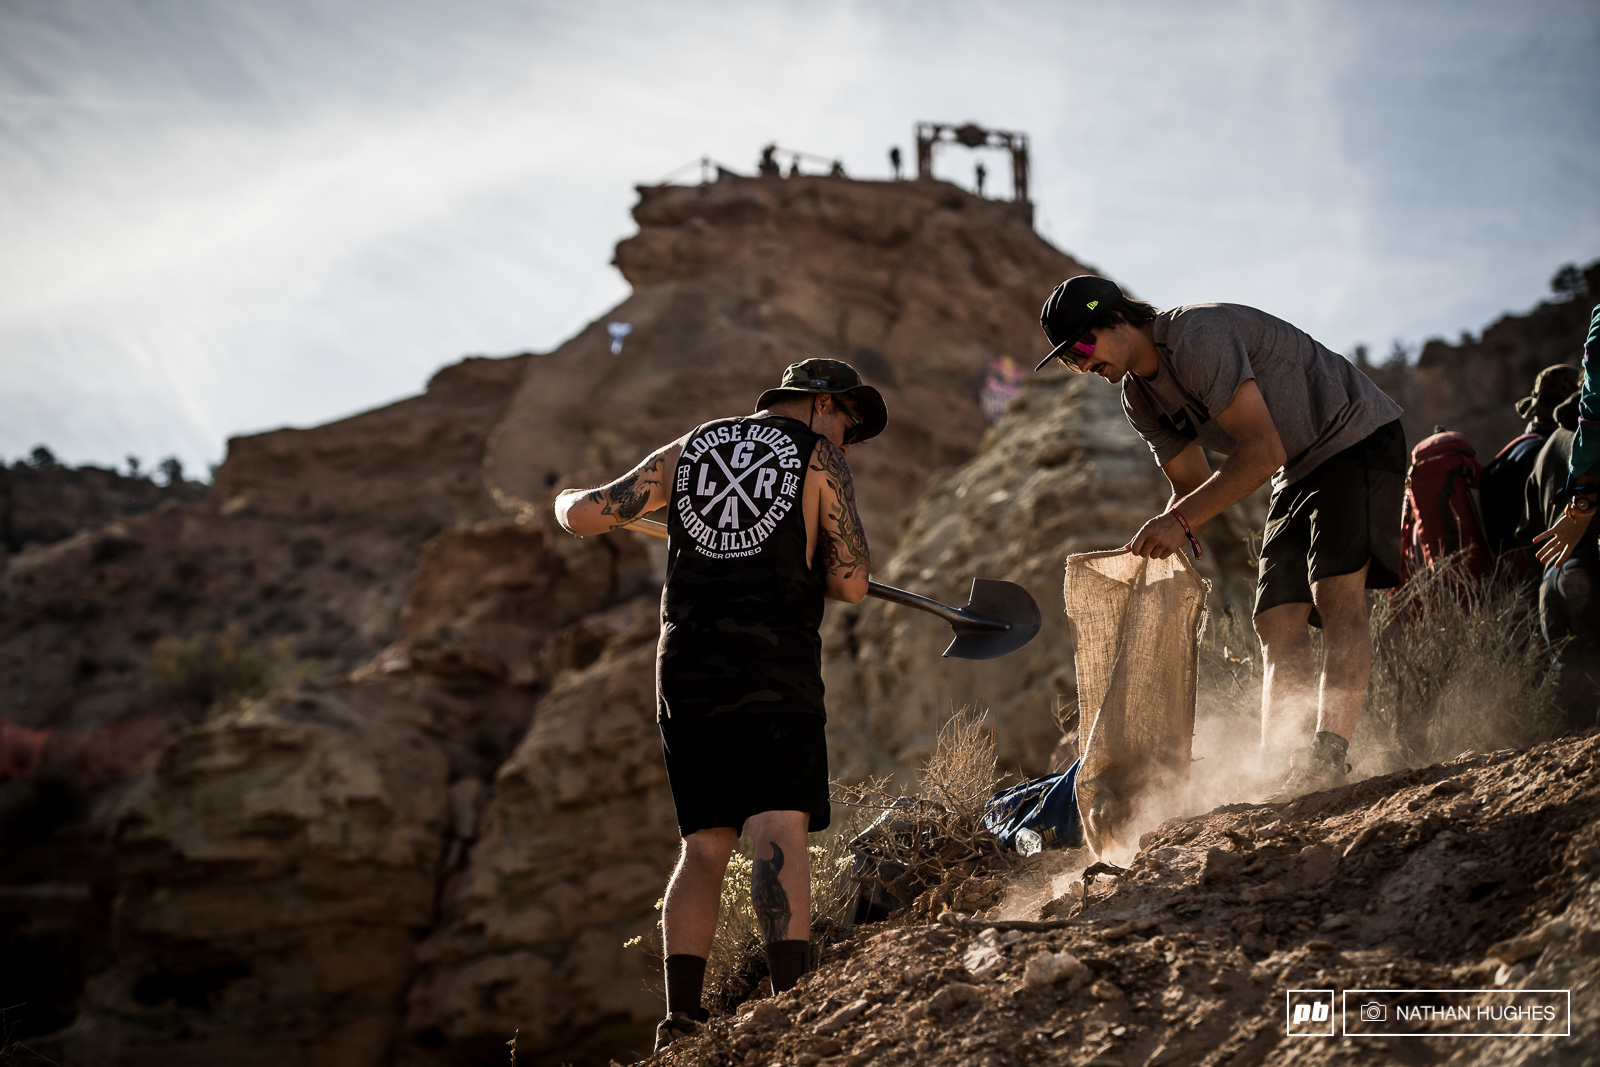 One of the two Great British hopes at Rampage Sam Reynolds with a long day of hard labour ahead of him.